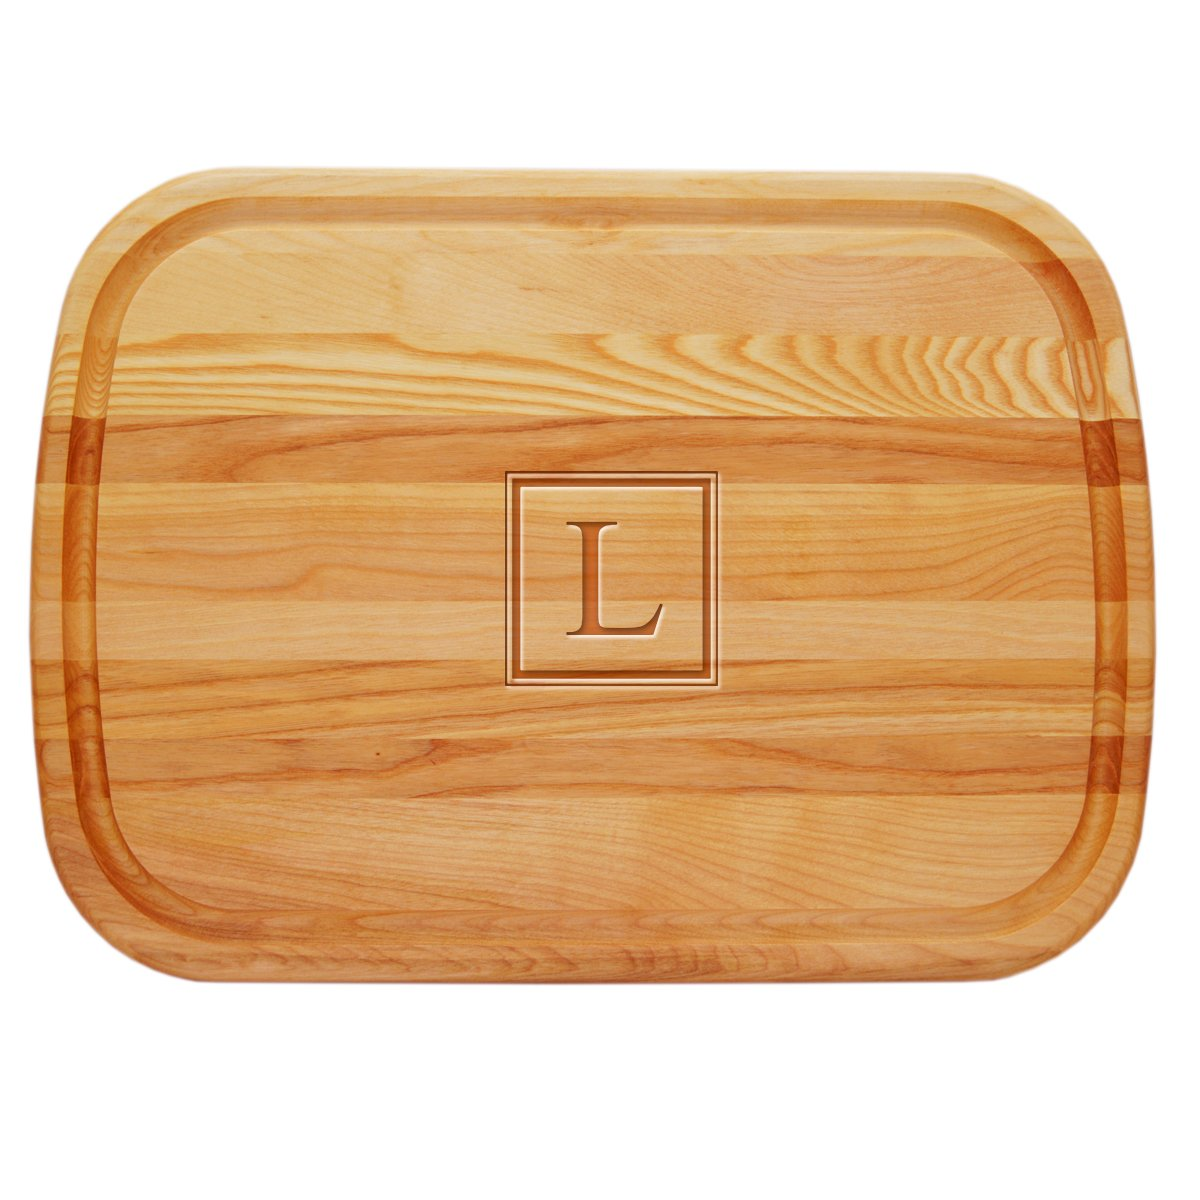 Carved Solutions 735255449860  Large Everyday Board with Etched Square Single Initial J.